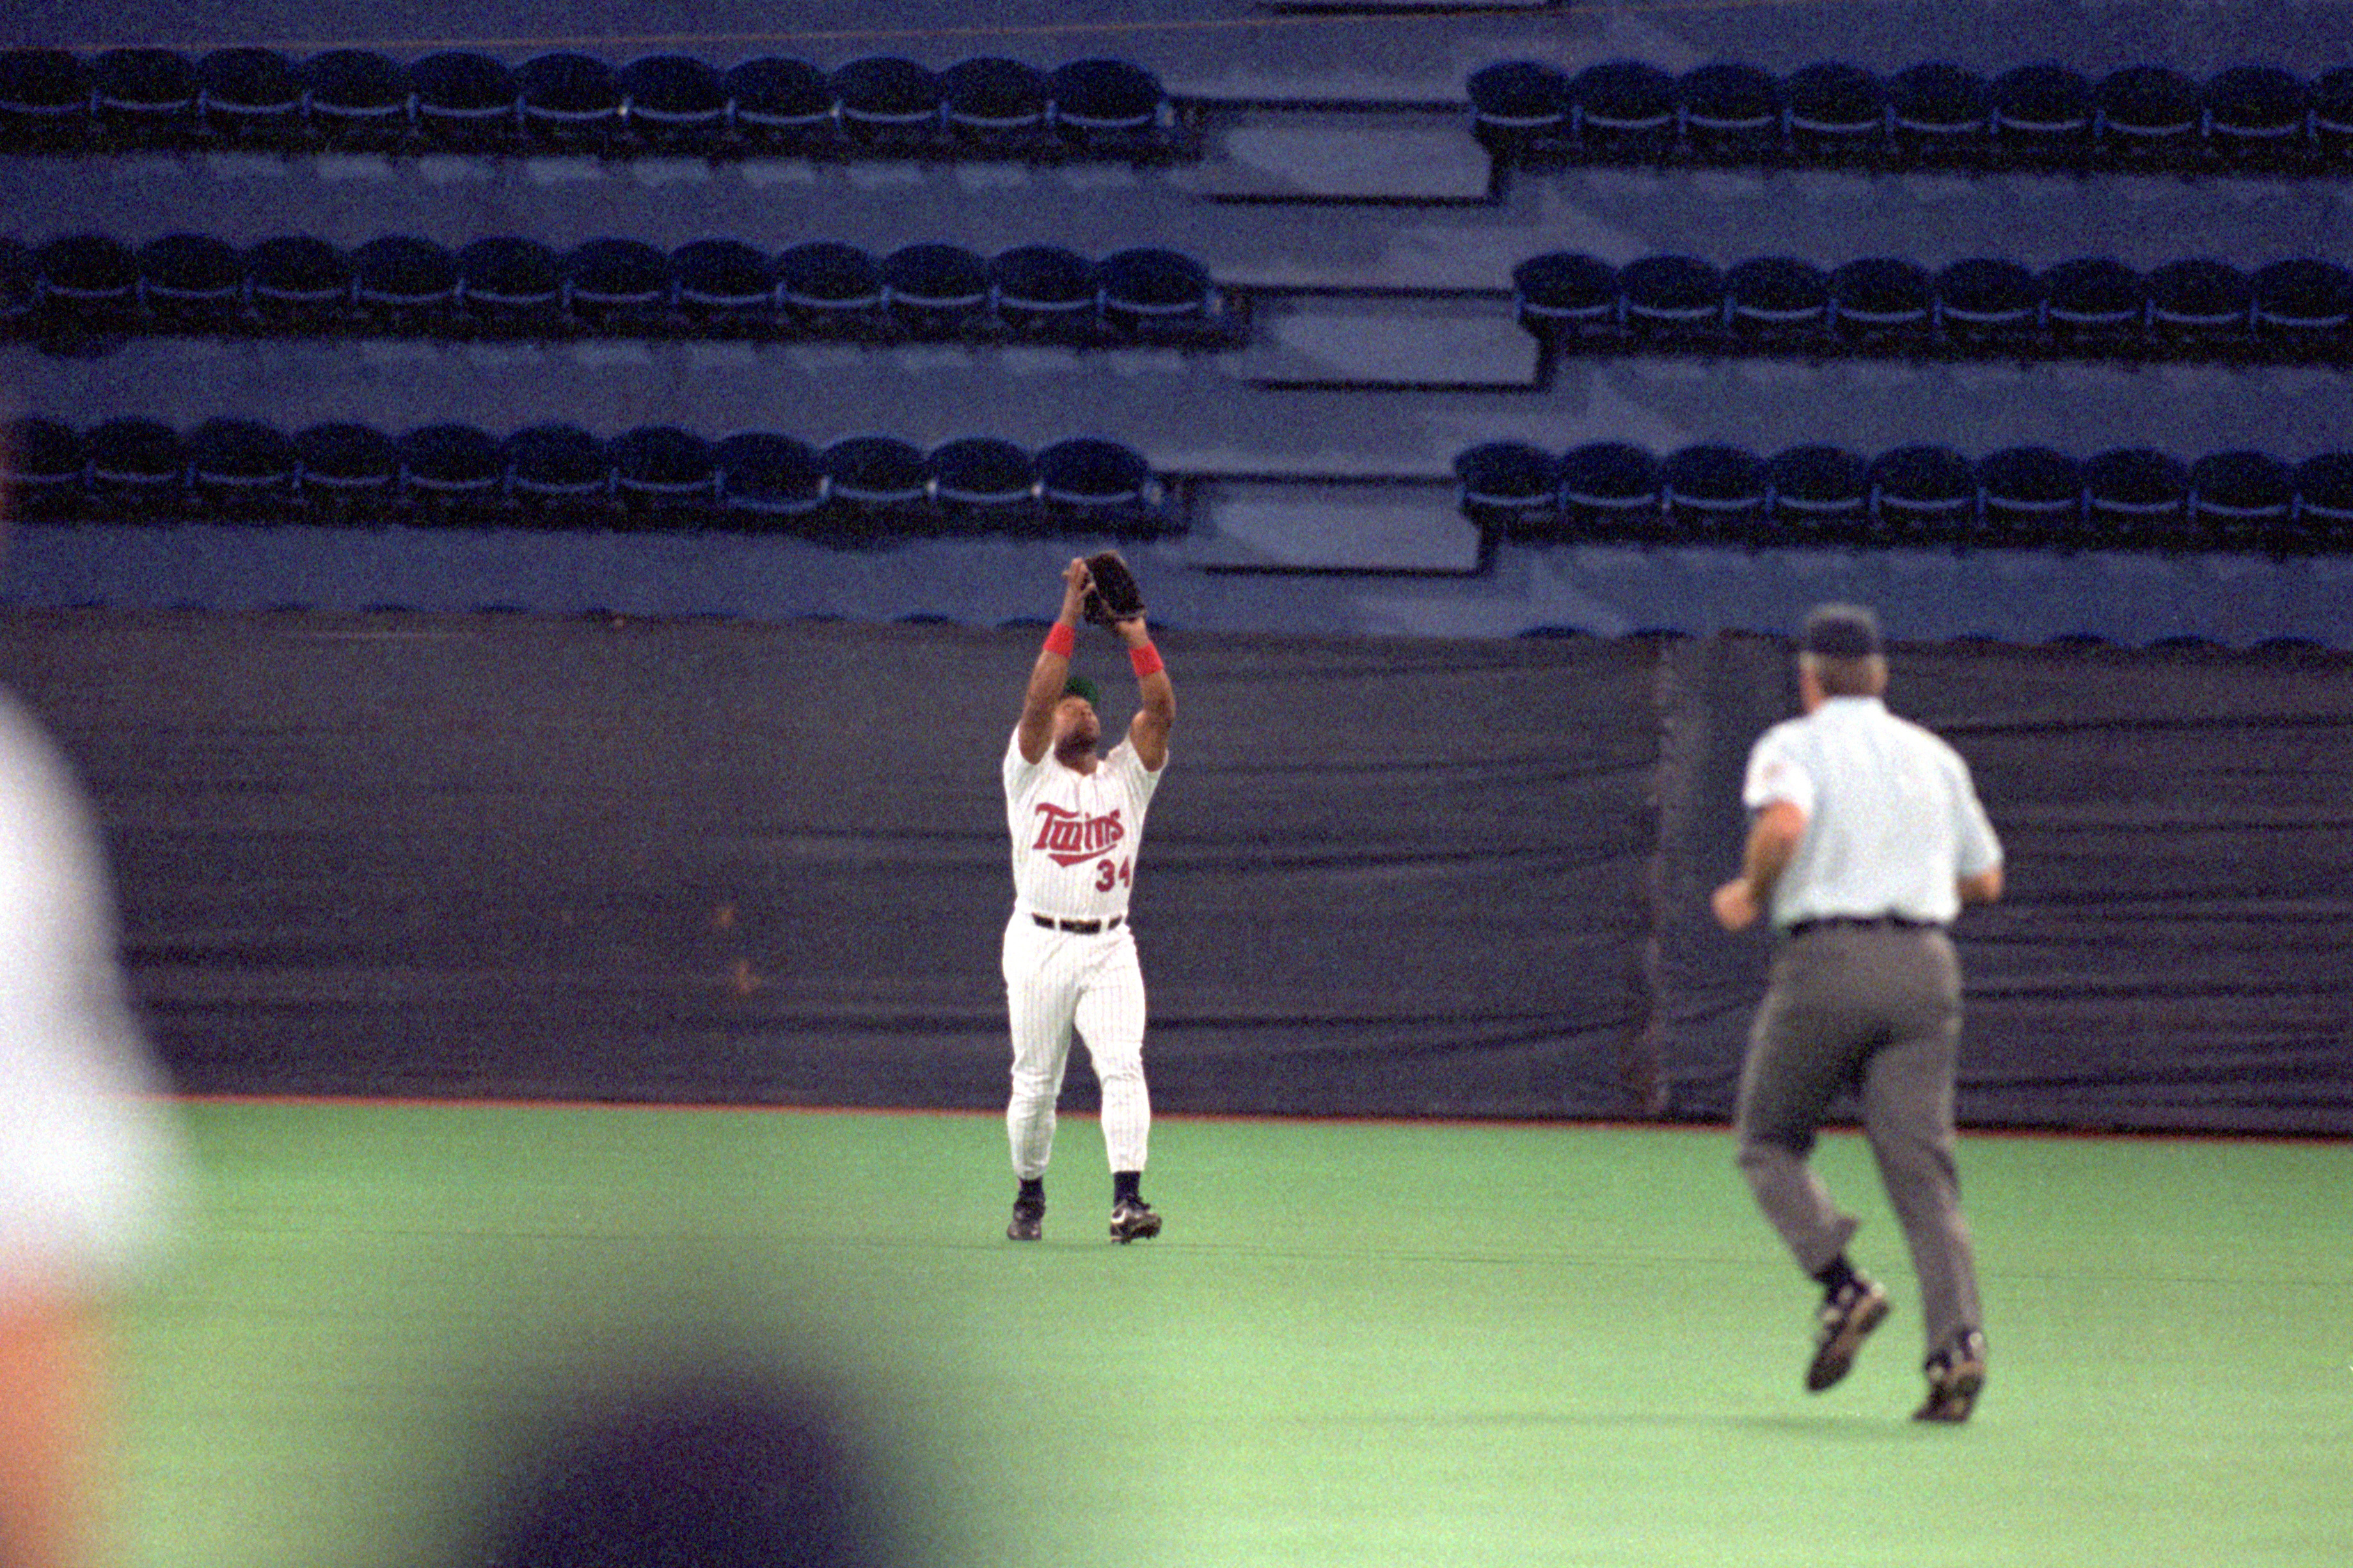 MINNEAPOLIS - OCTOBER 20:  Kirby Puckett #34 of the Minnesota Twins reaches for a pop fly during Game two of the 1991 World Series against the Atlanta Braves at the Metrodome on October 20, 1991 in Minneapolis, Minnesota. The Twins defeated the Braves 3-2